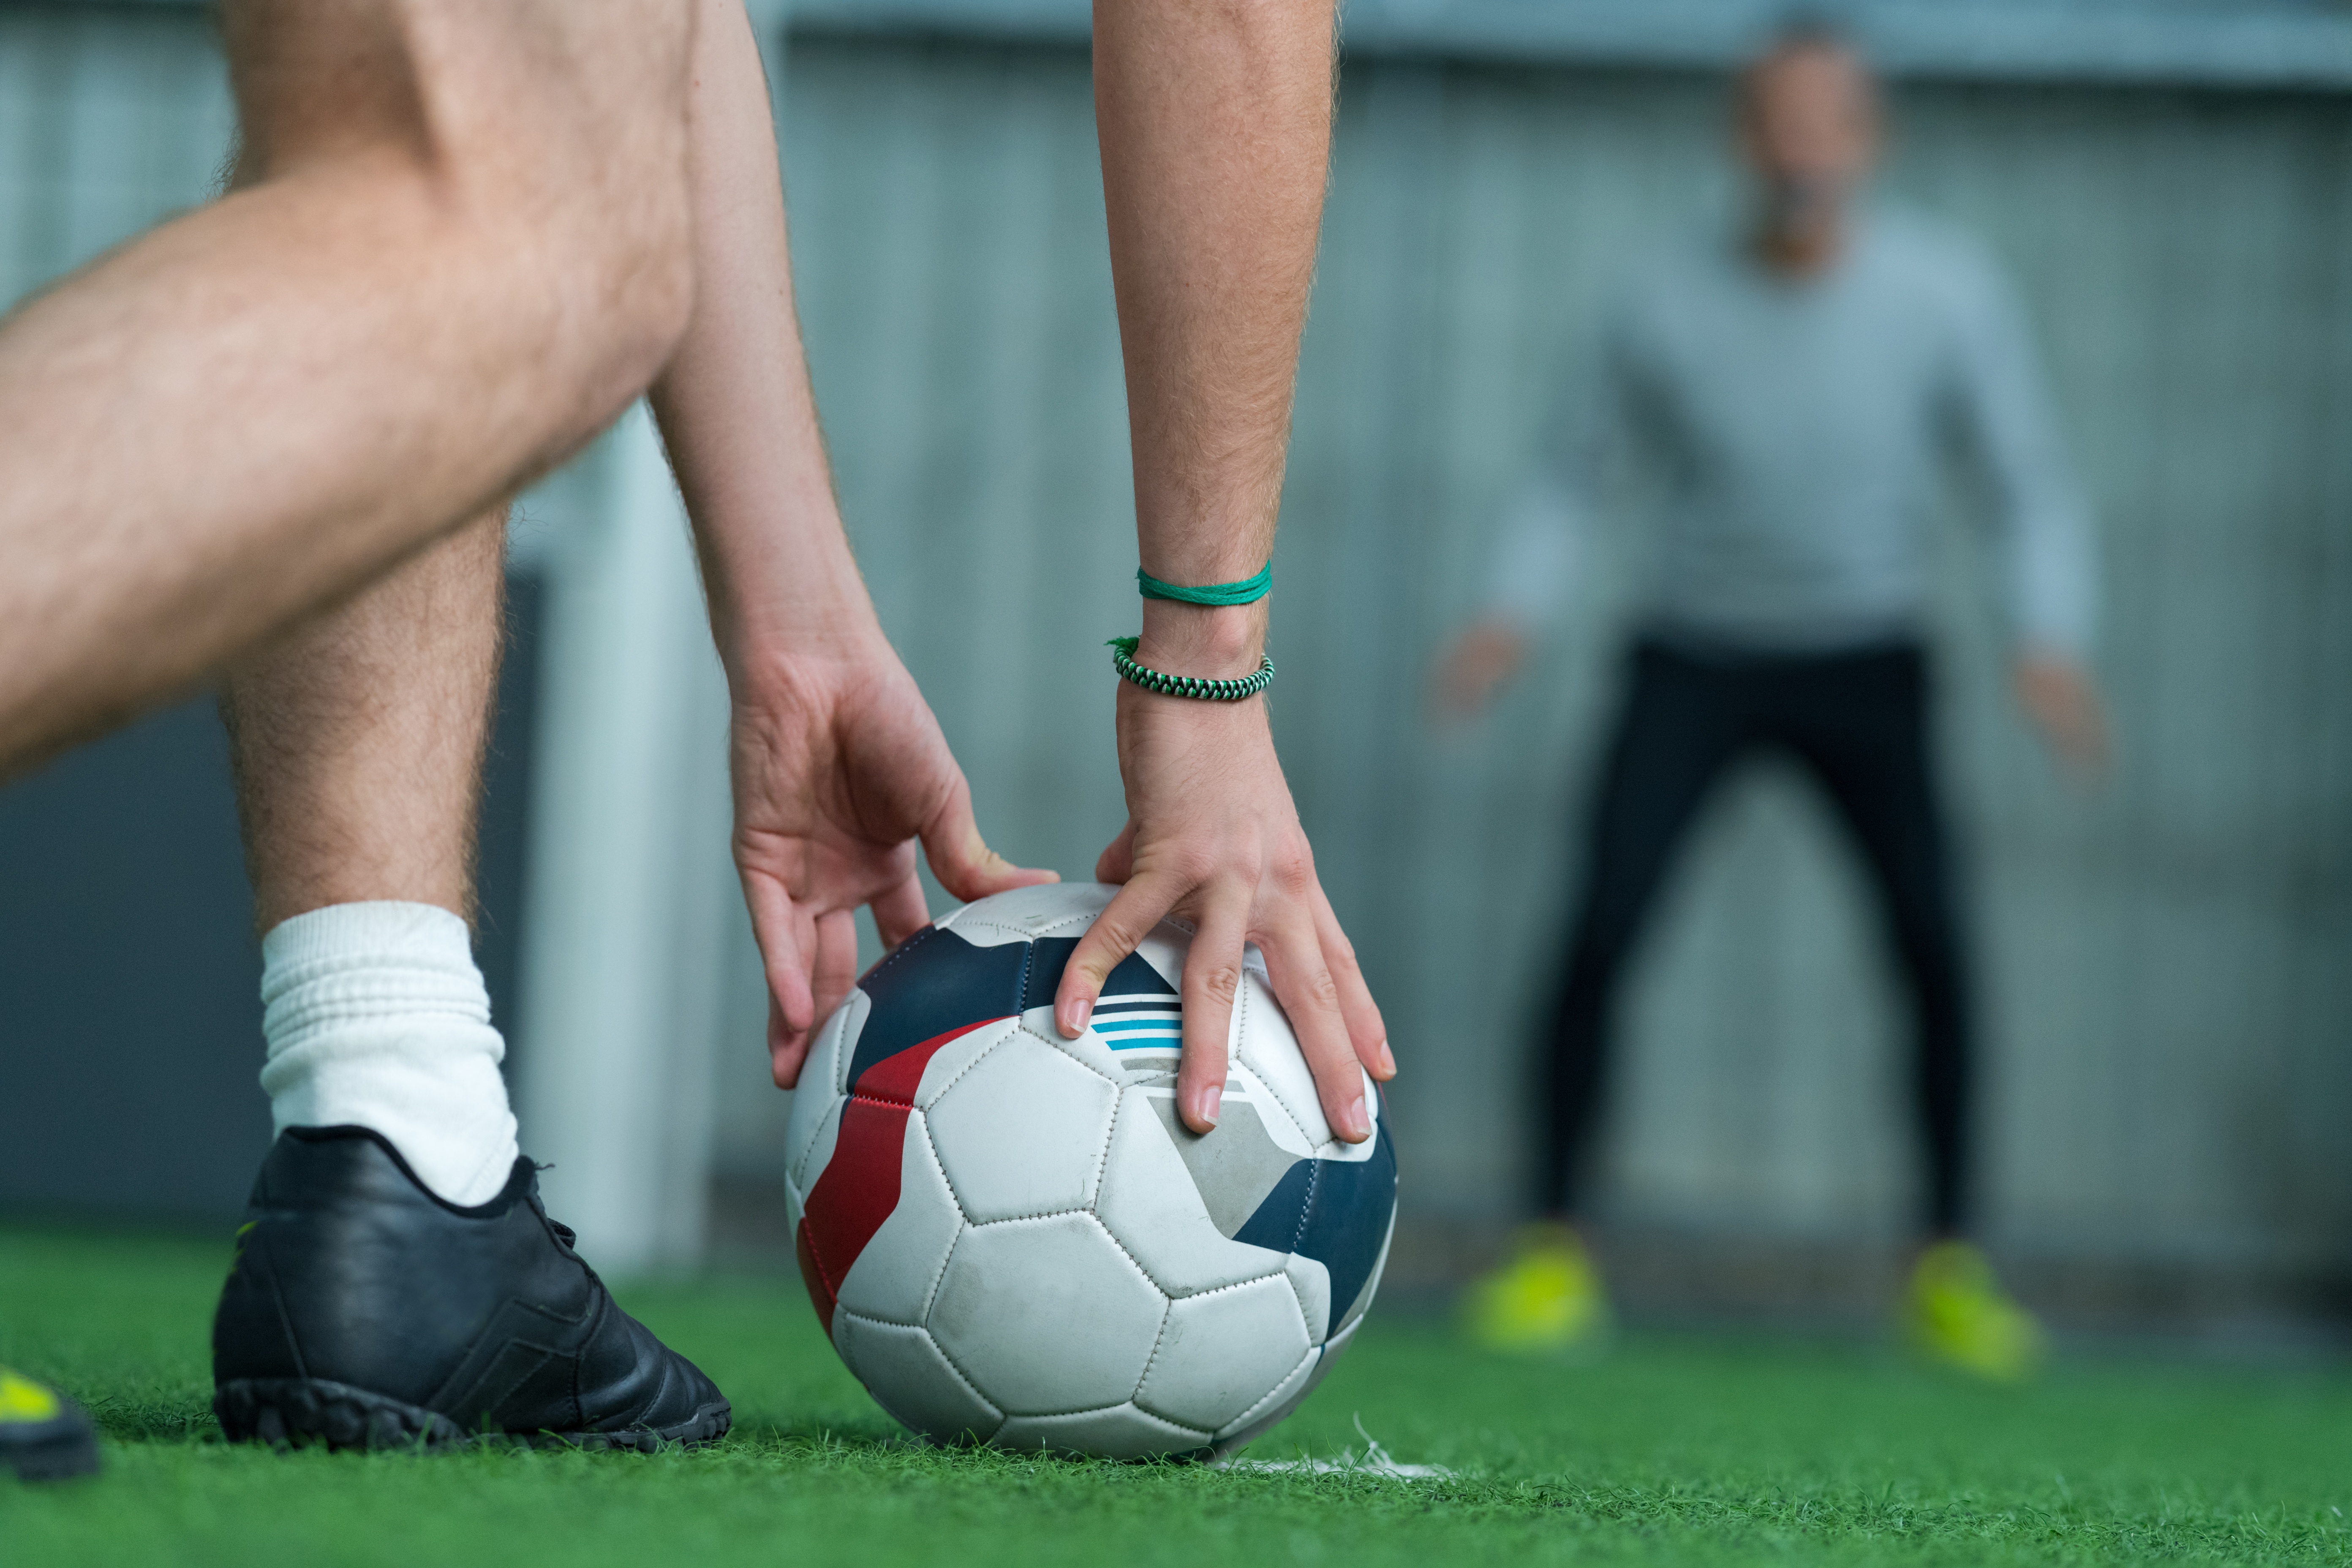 Soccer player placing soccer ball before penalty kick